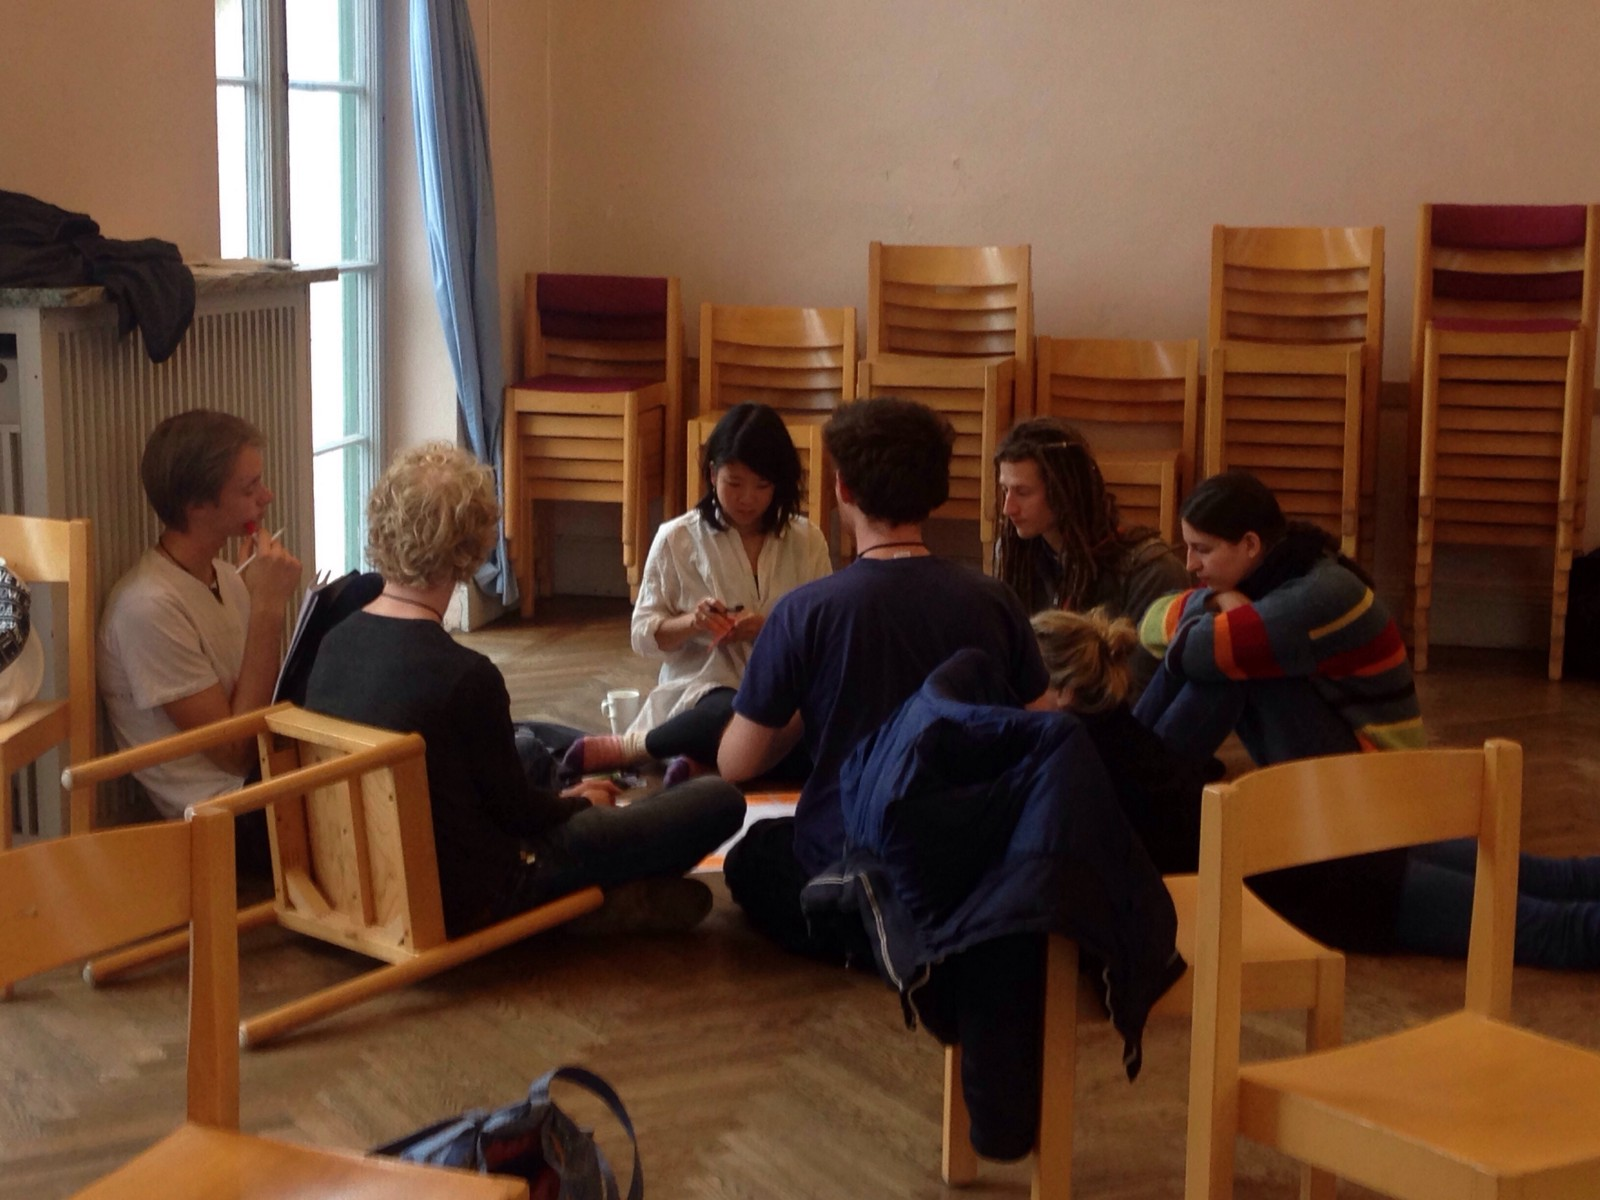 One of the self-organised, bossless groups, sharing dreams and building a collective project.